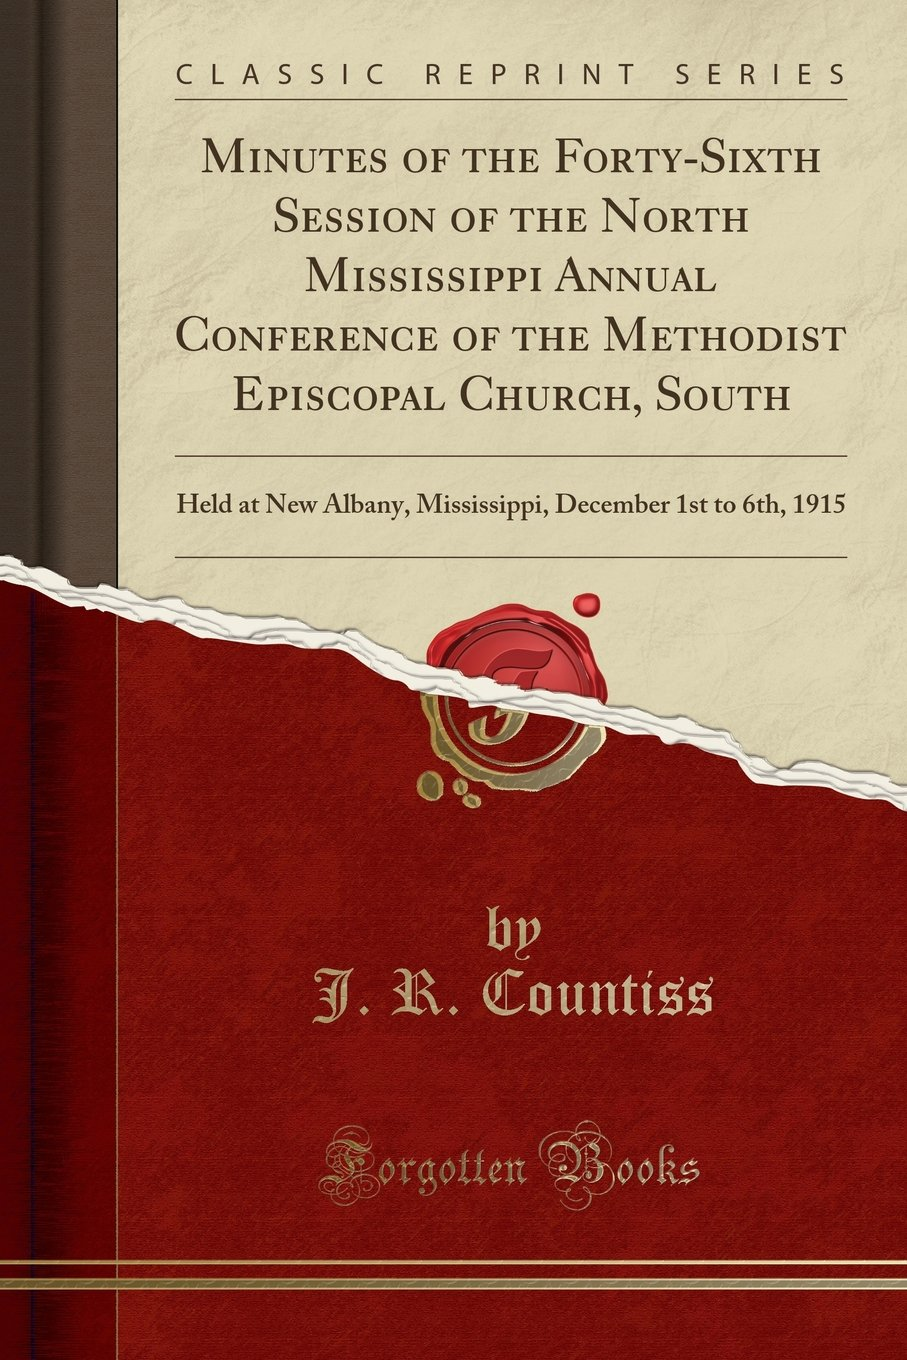 Read Online Minutes of the Forty-Sixth Session of the North Mississippi Annual Conference of the Methodist Episcopal Church, South: Held at New Albany, Mississippi, December 1st to 6th, 1915 (Classic Reprint) pdf